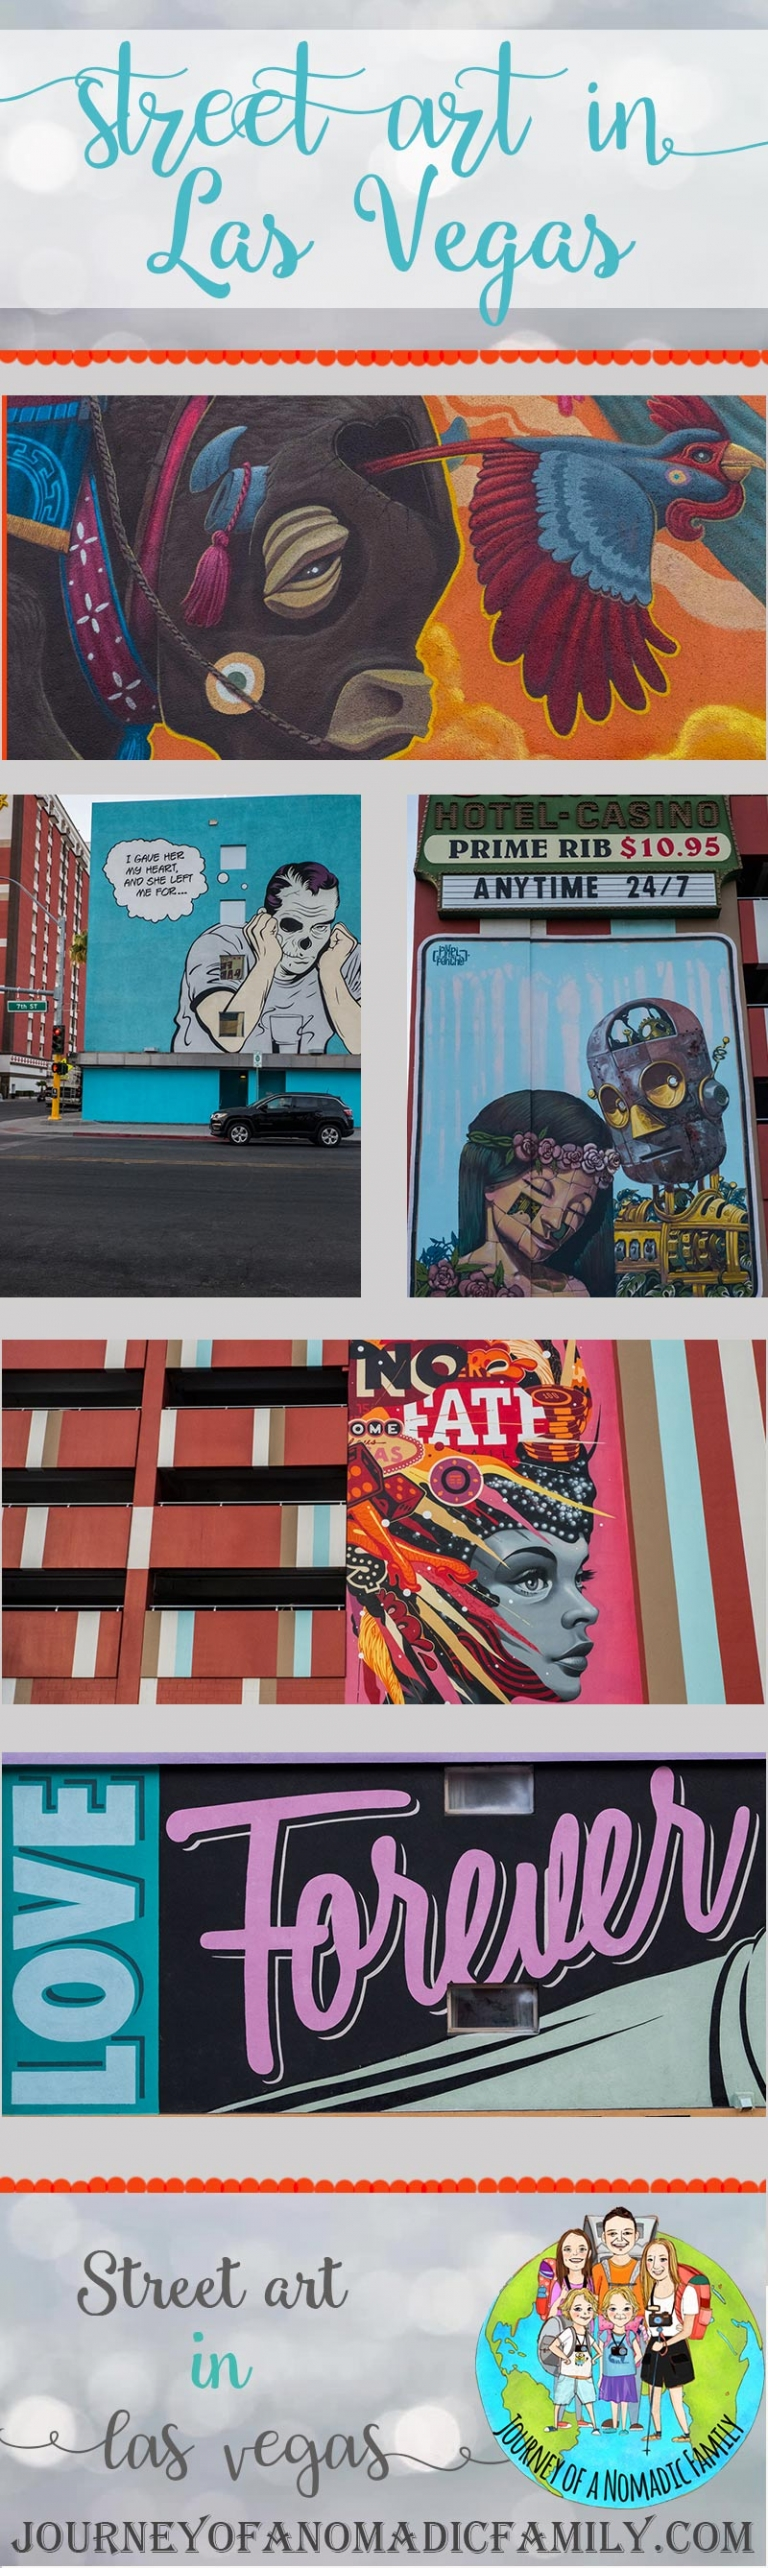 Where to find street art in Las Vegas